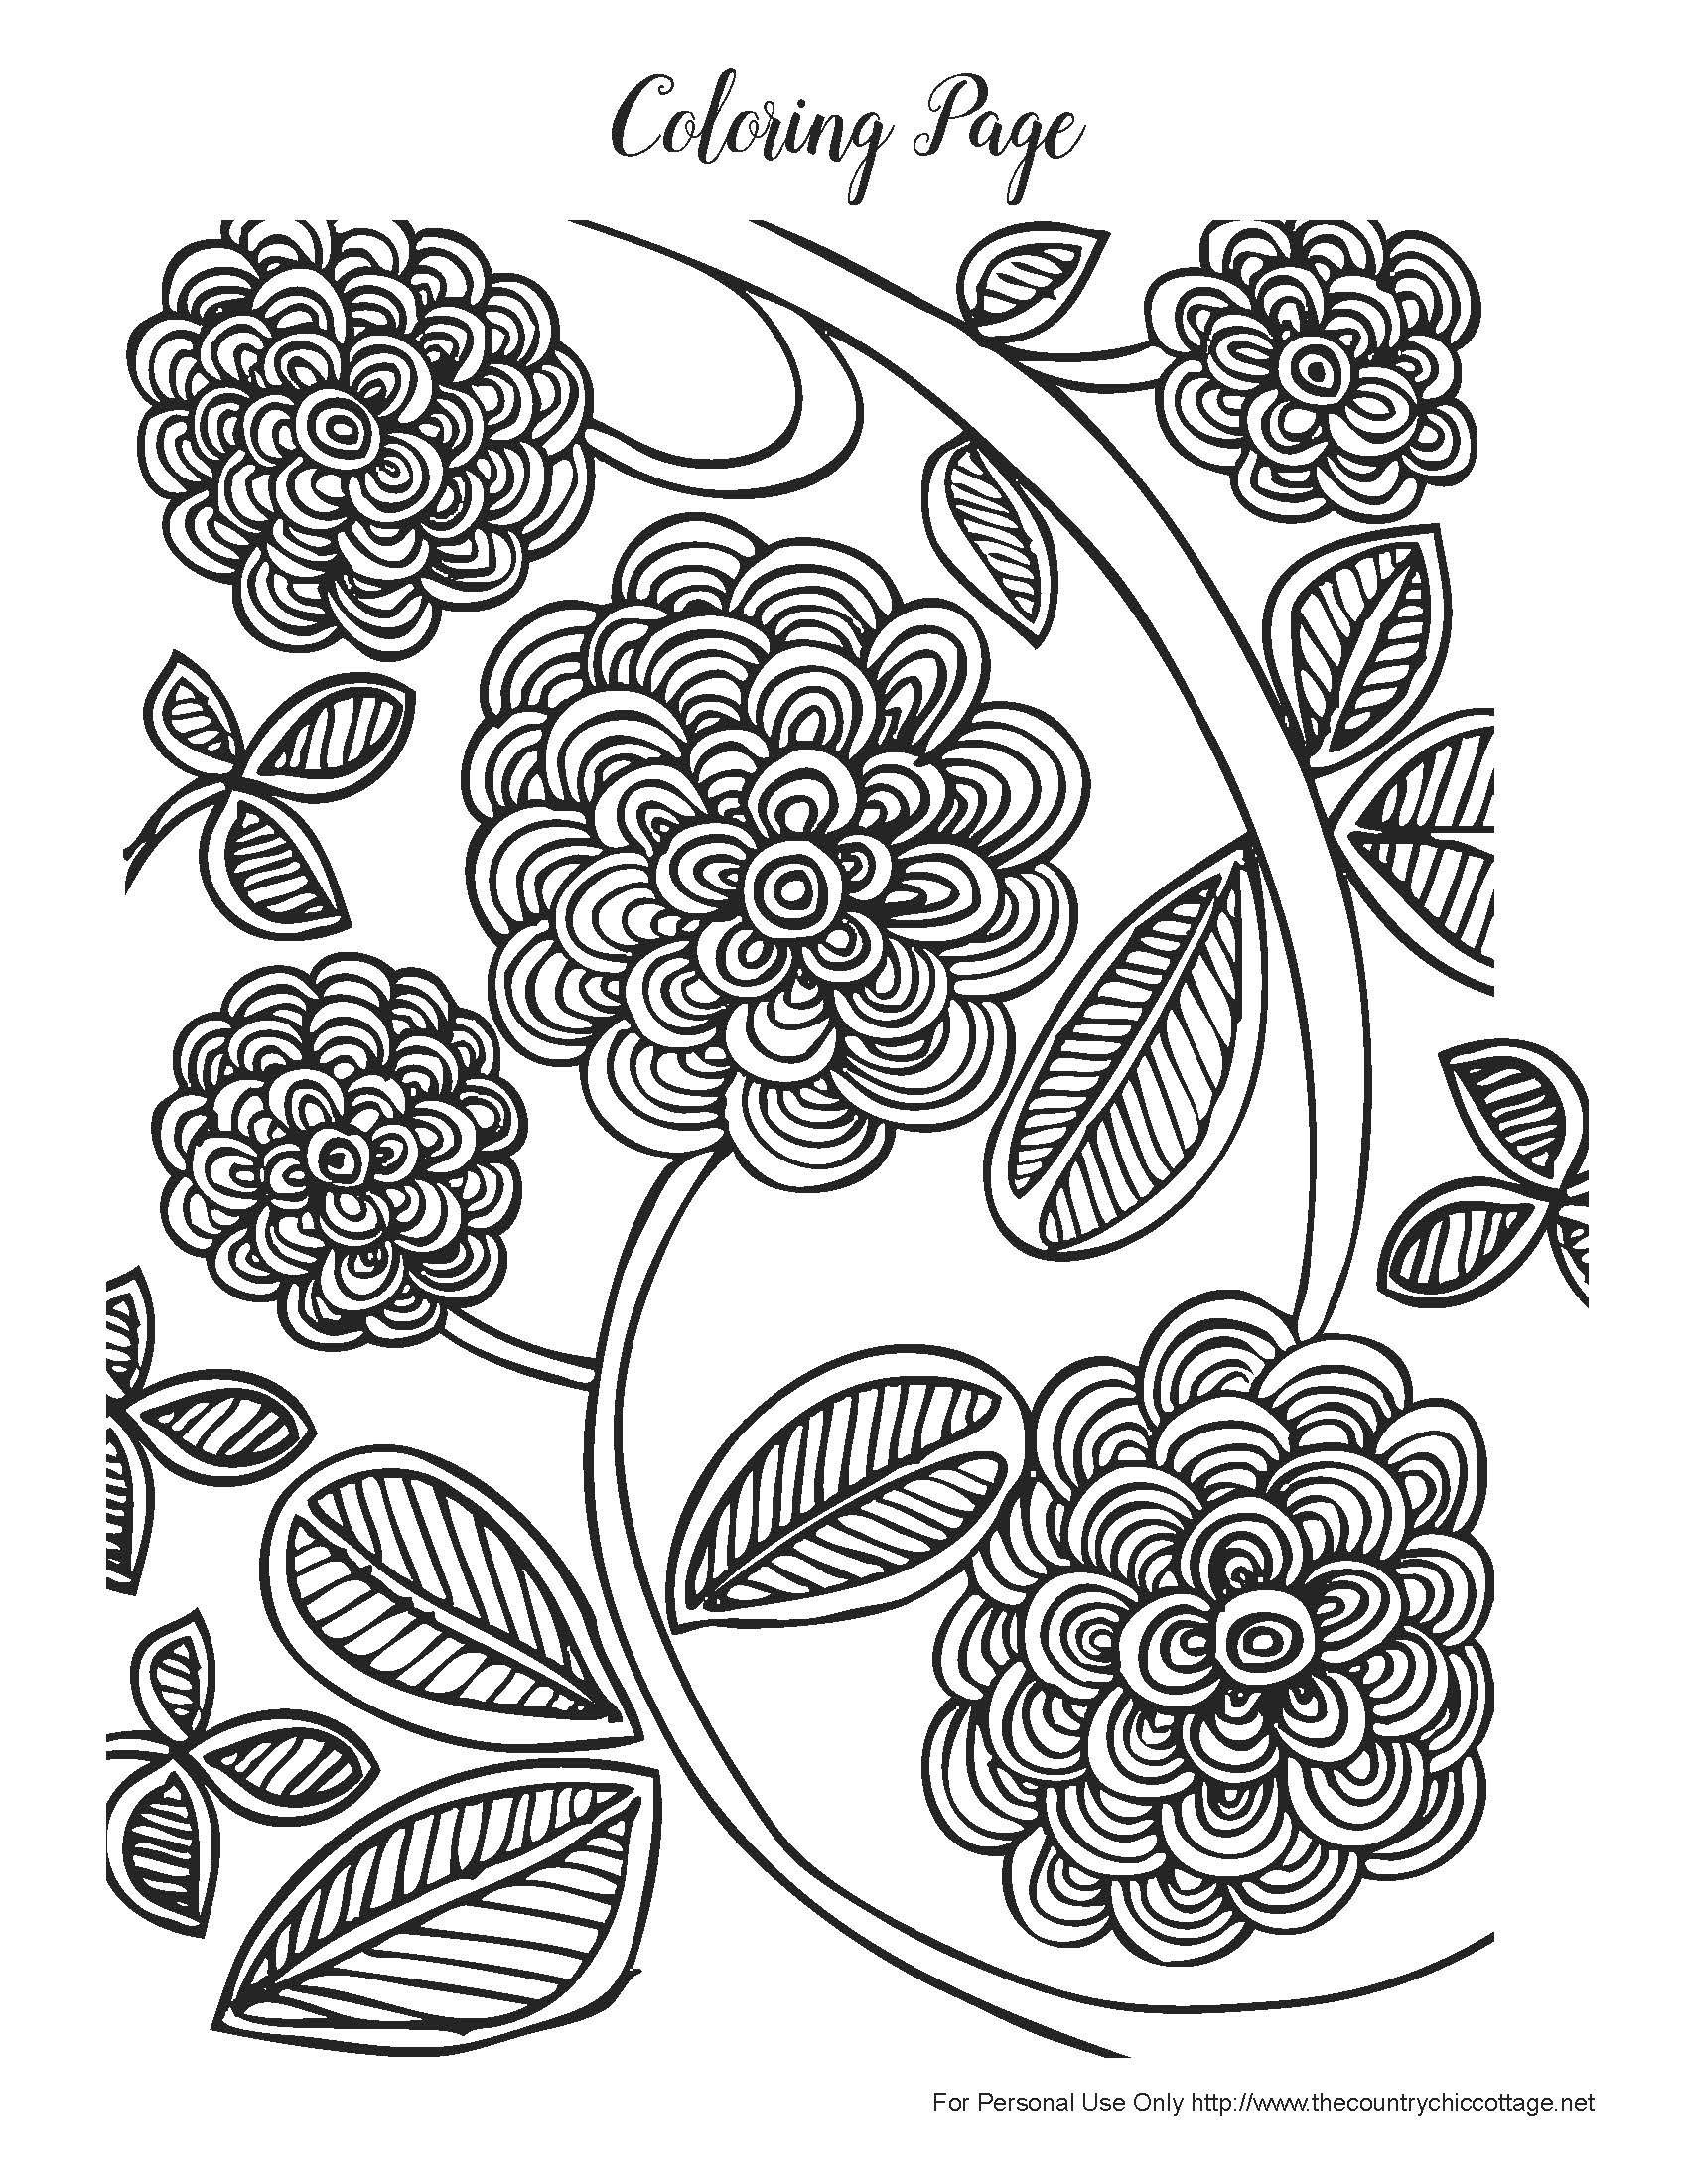 Free Spring Coloring Pages For Adults   Products I Love   Spring - Spring Coloring Sheets Free Printable